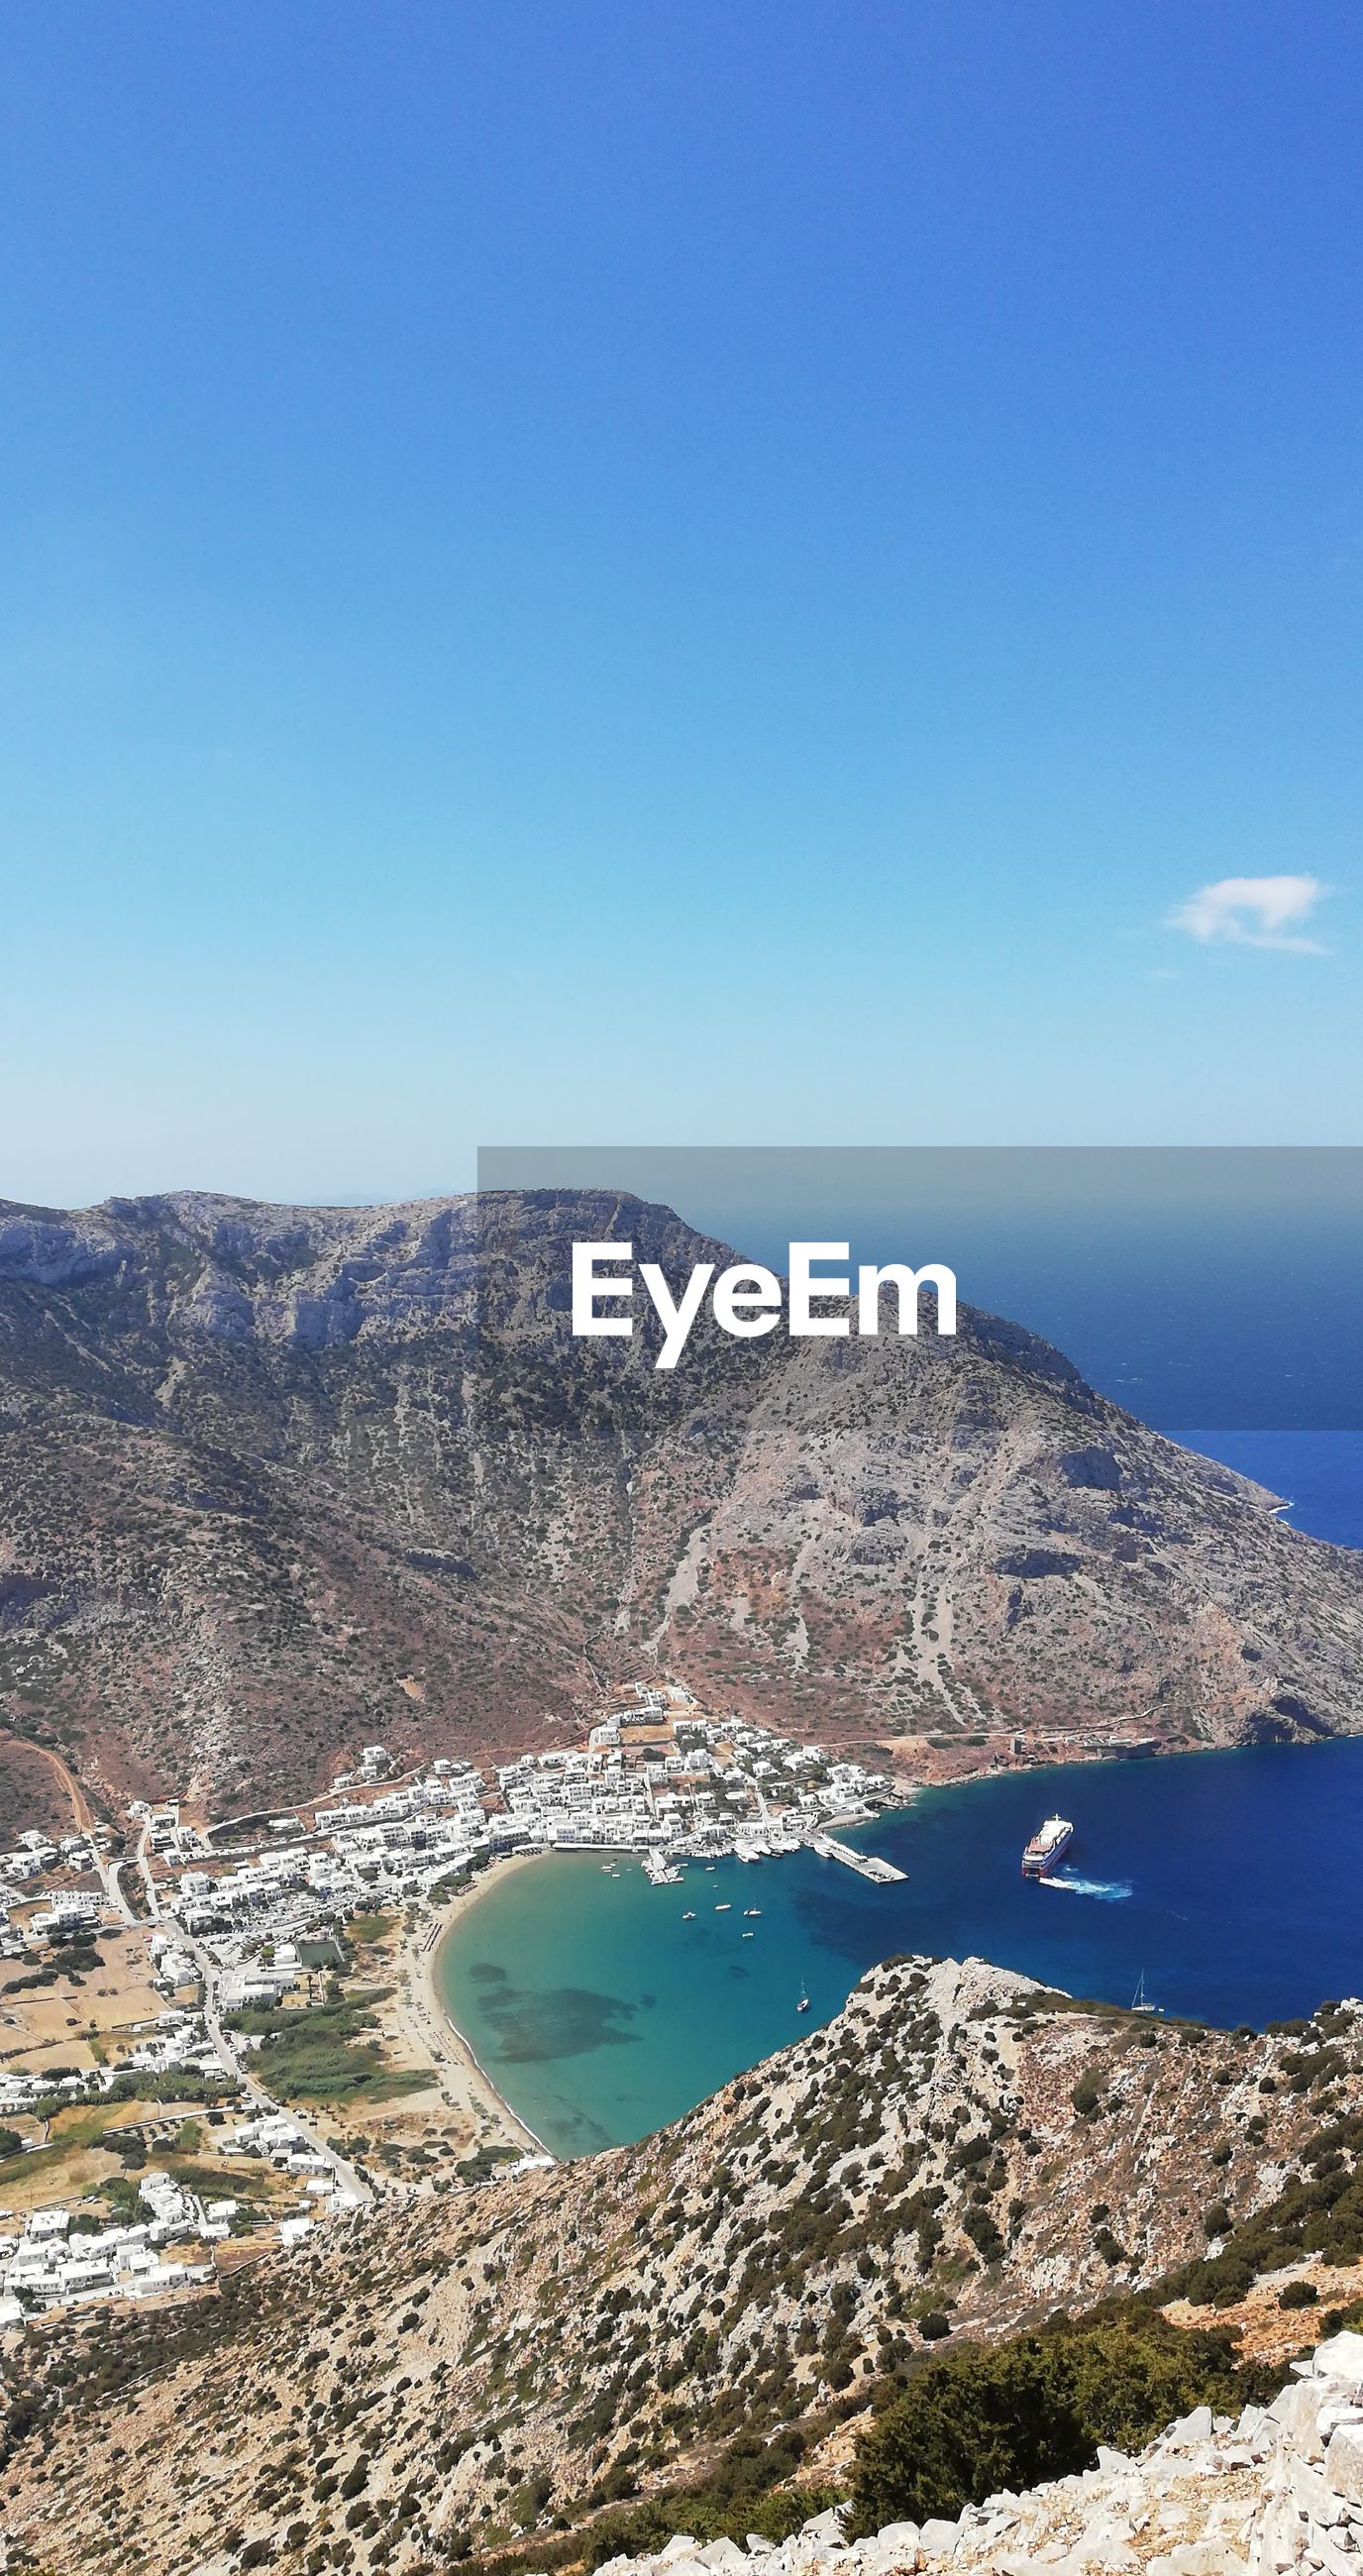 HIGH ANGLE VIEW OF SEA AND MOUNTAINS AGAINST BLUE SKY